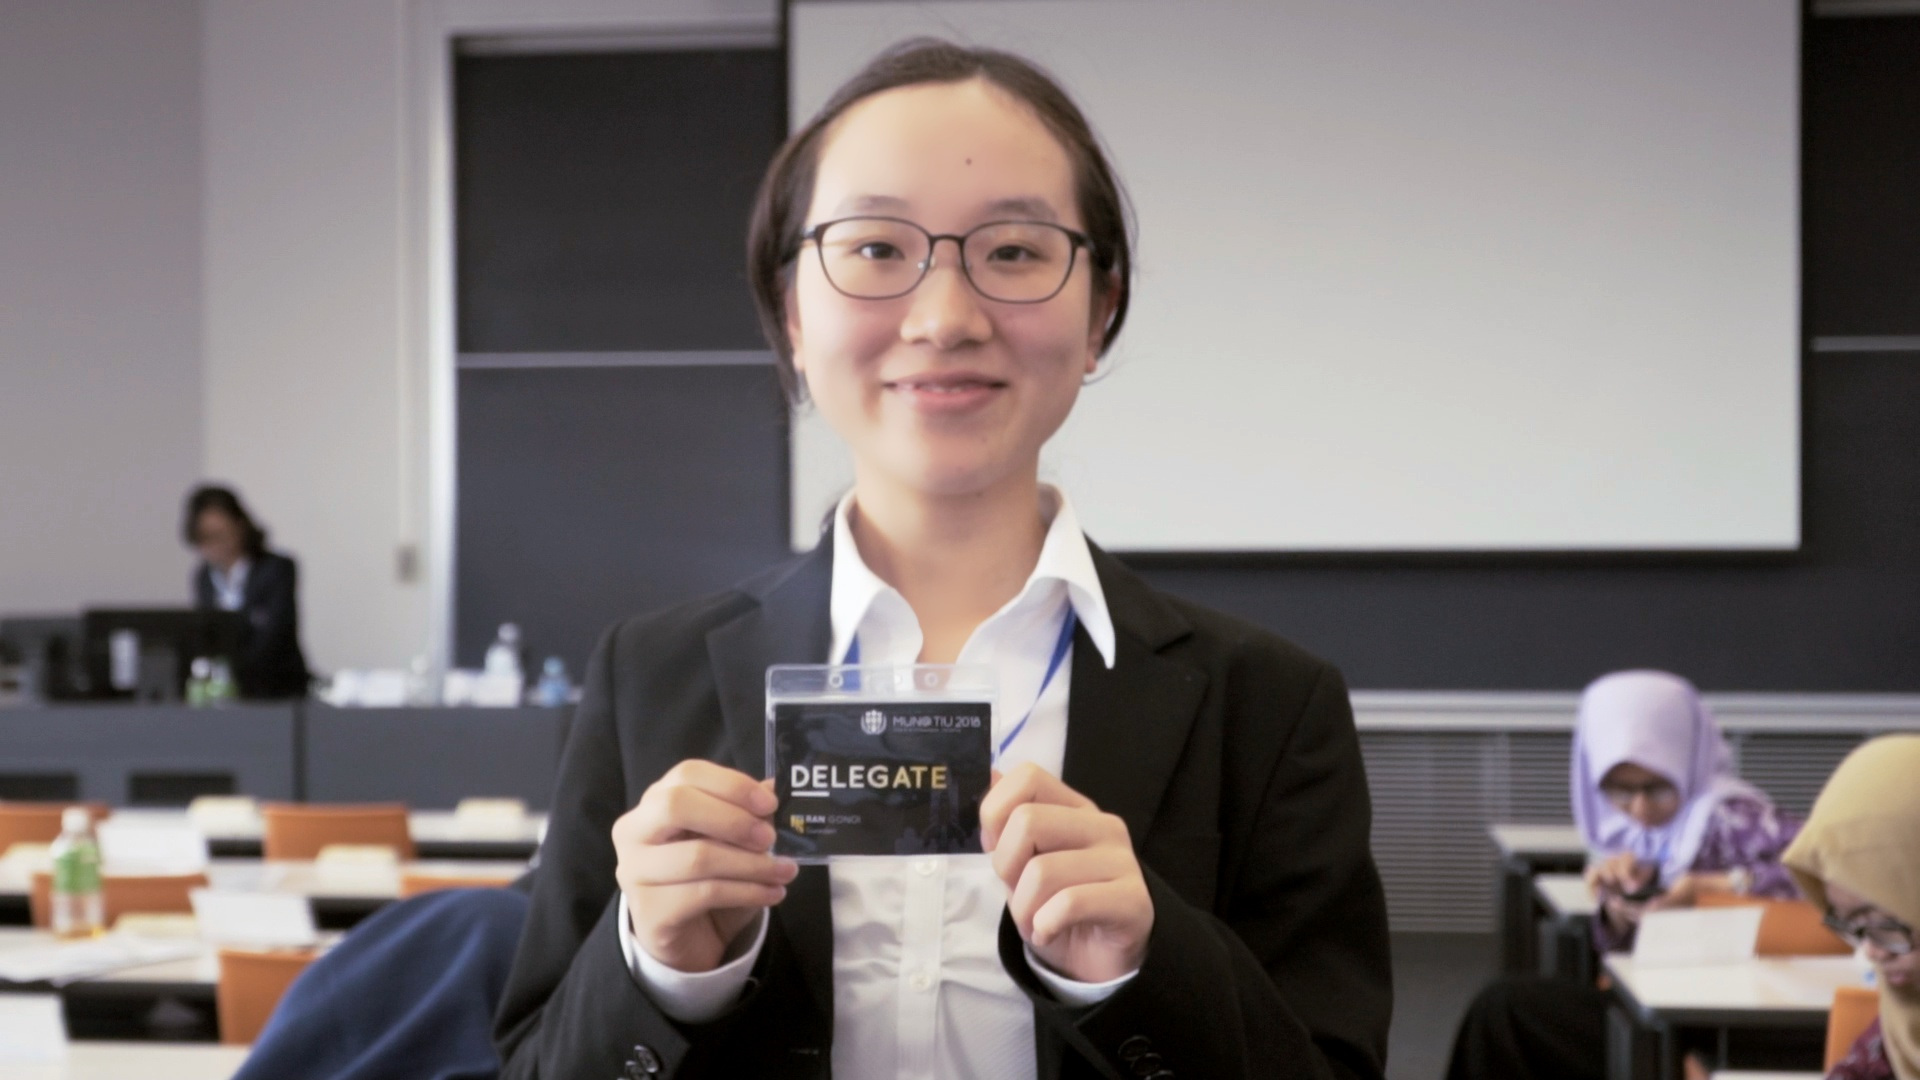 The Delegate of Sweden showed off her fancy early-bird exclusive name badge.